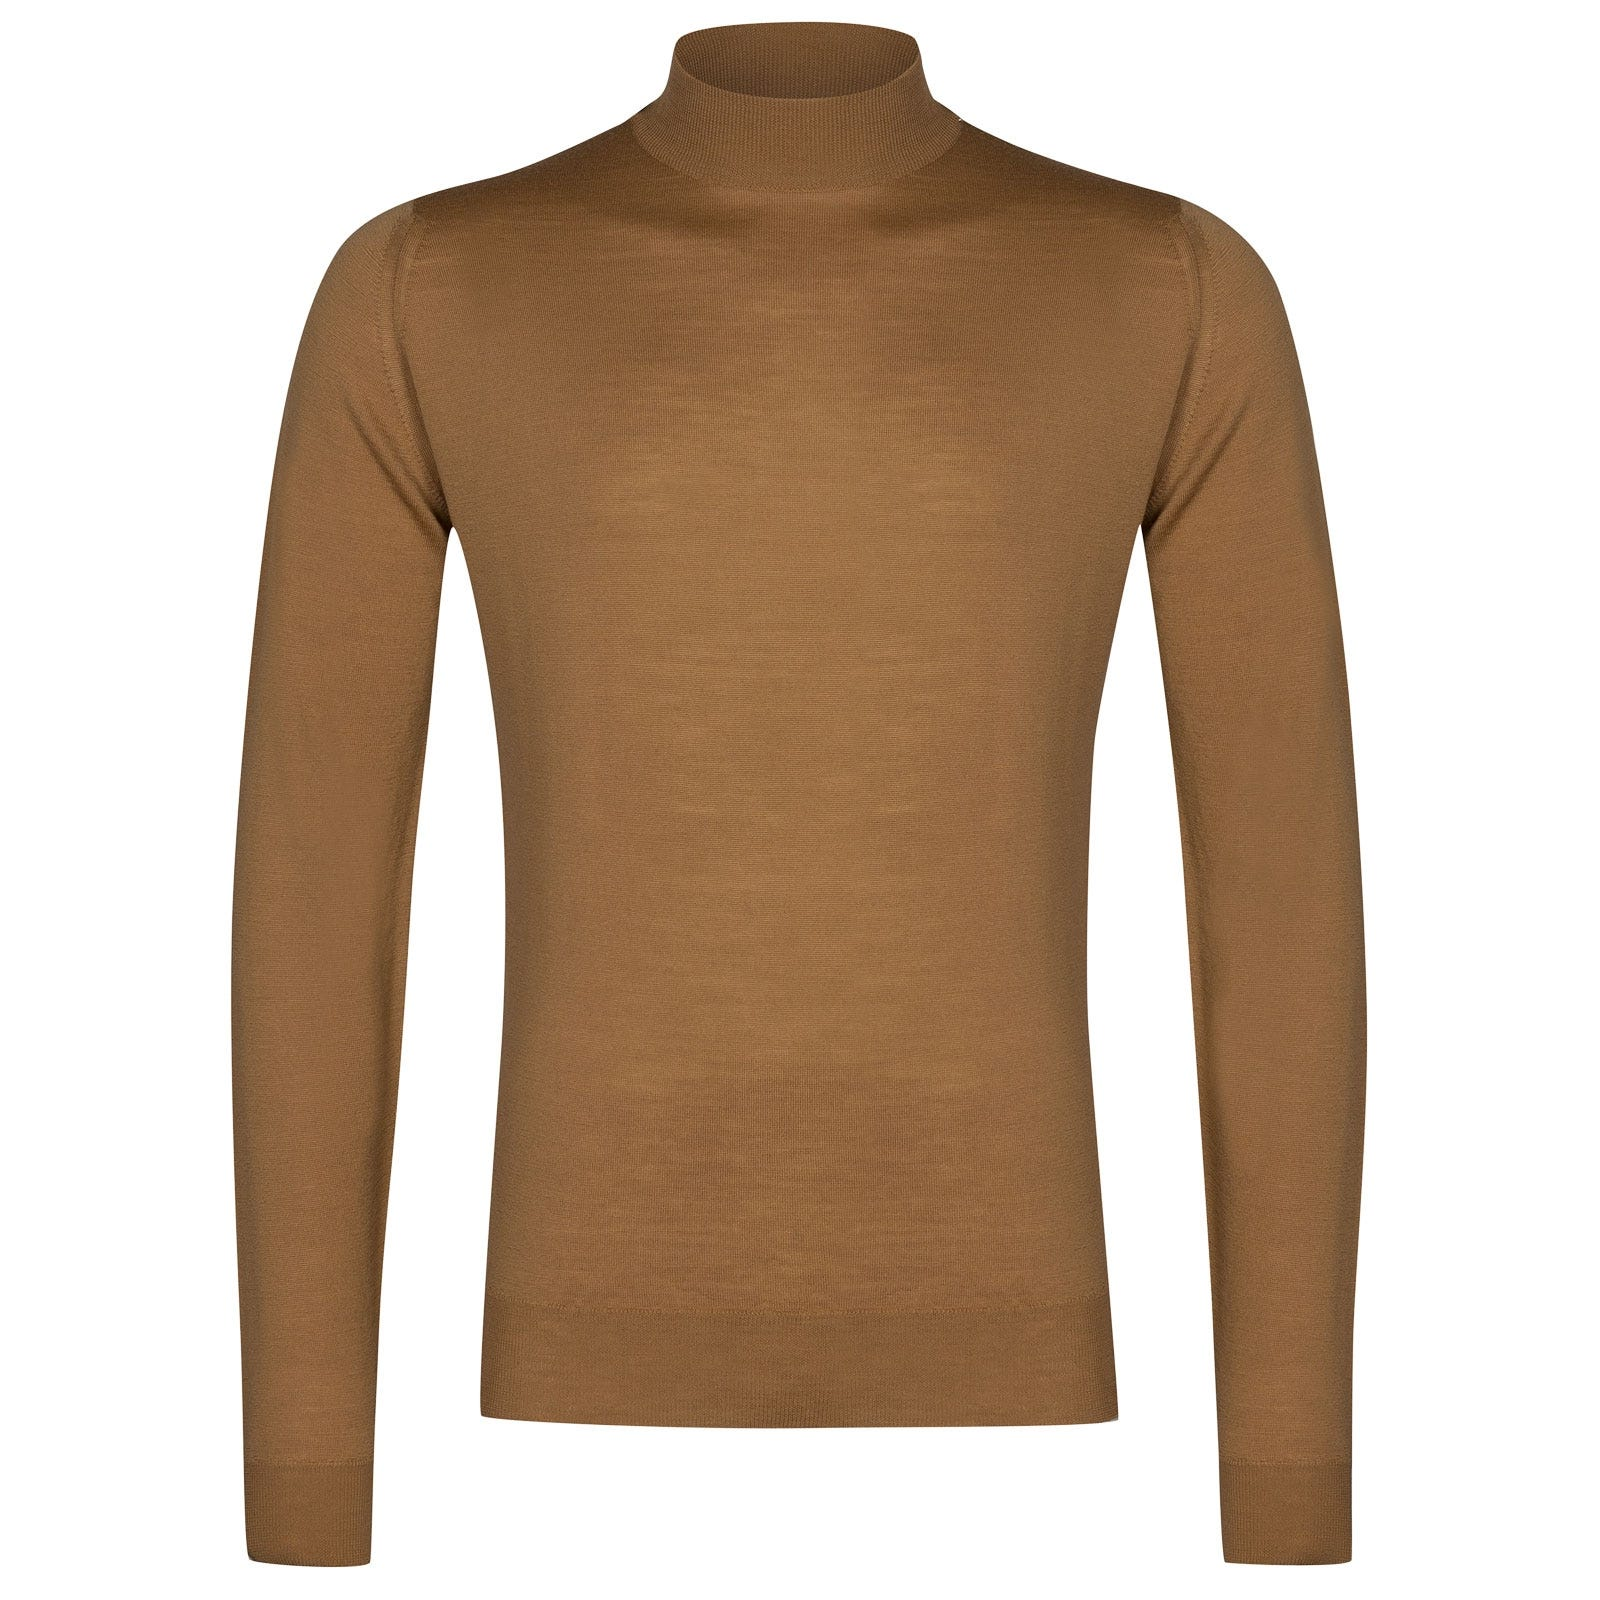 John Smedley Harcourt in Camel Pullover-LGE